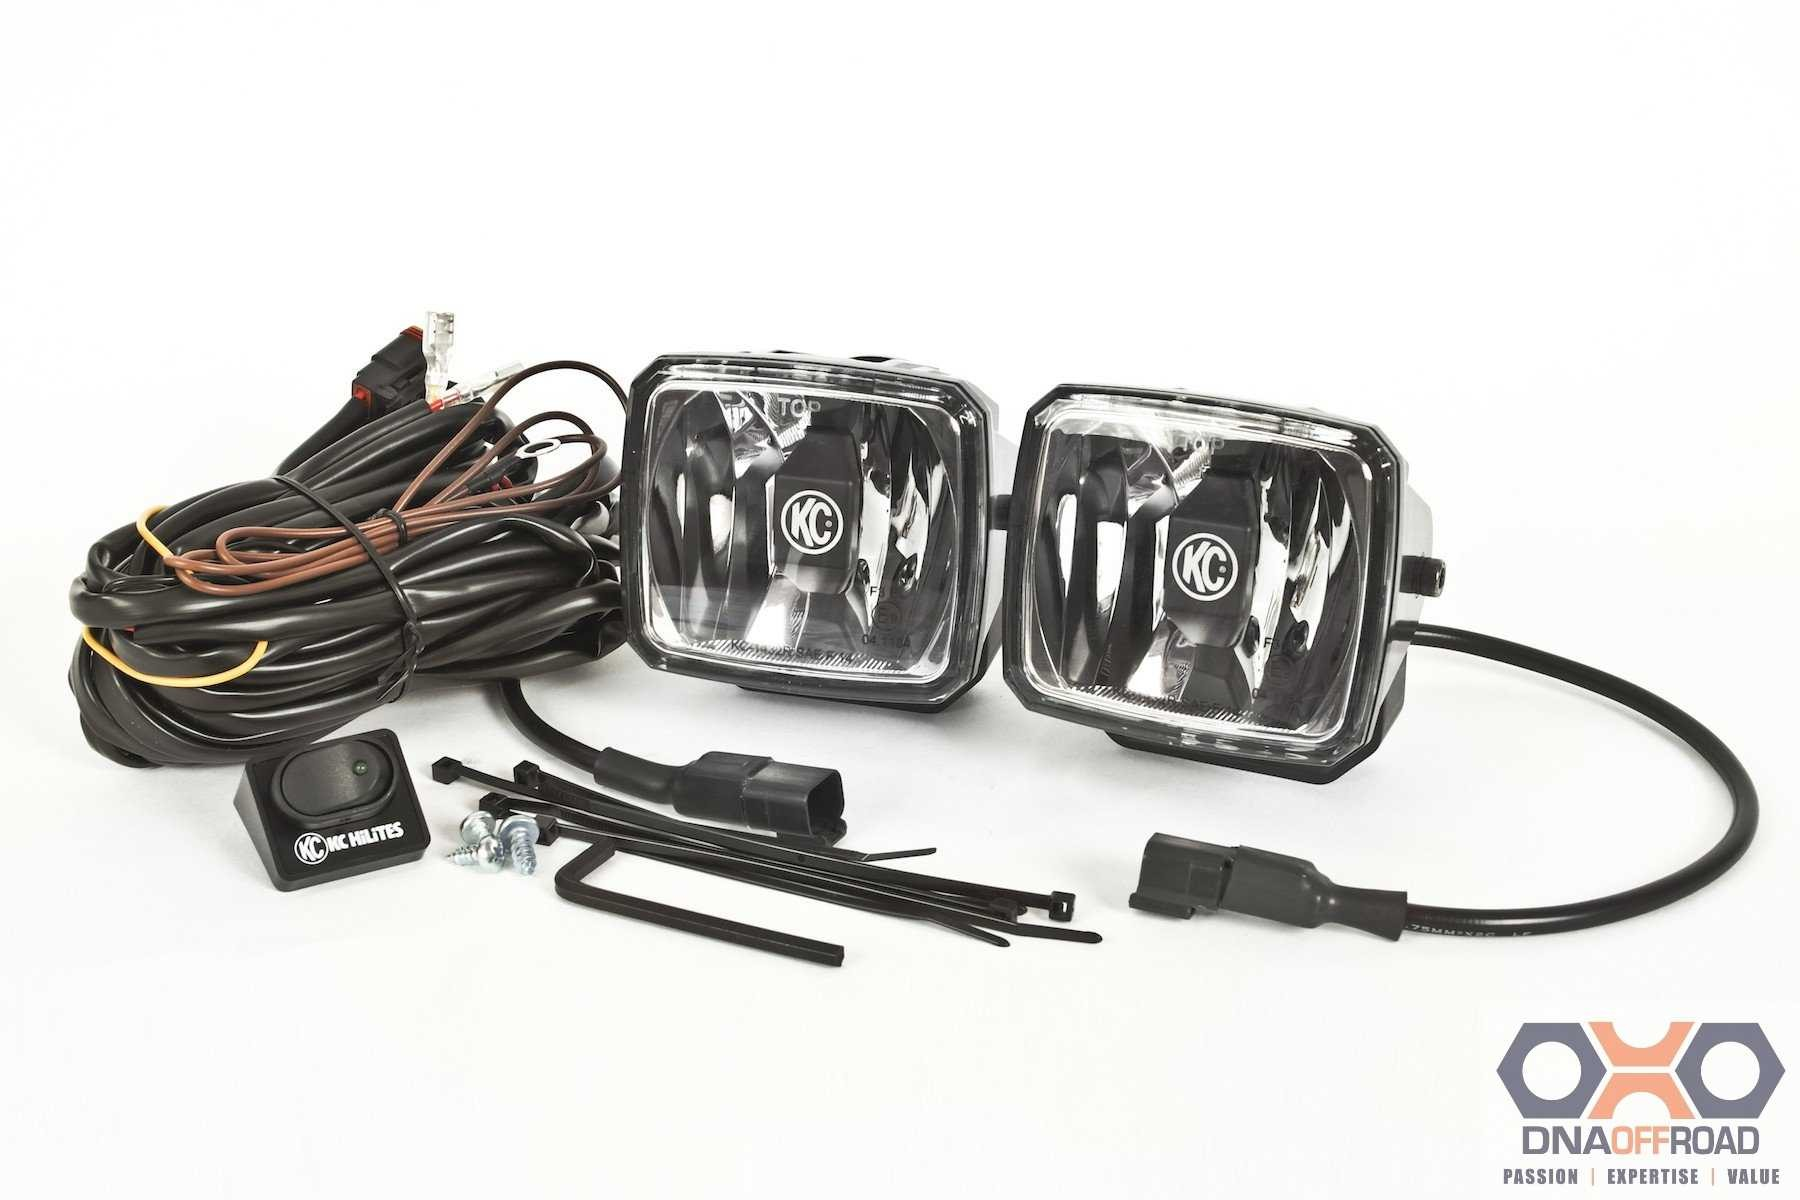 KC HiLiTES Gravity LED G34 pair pack